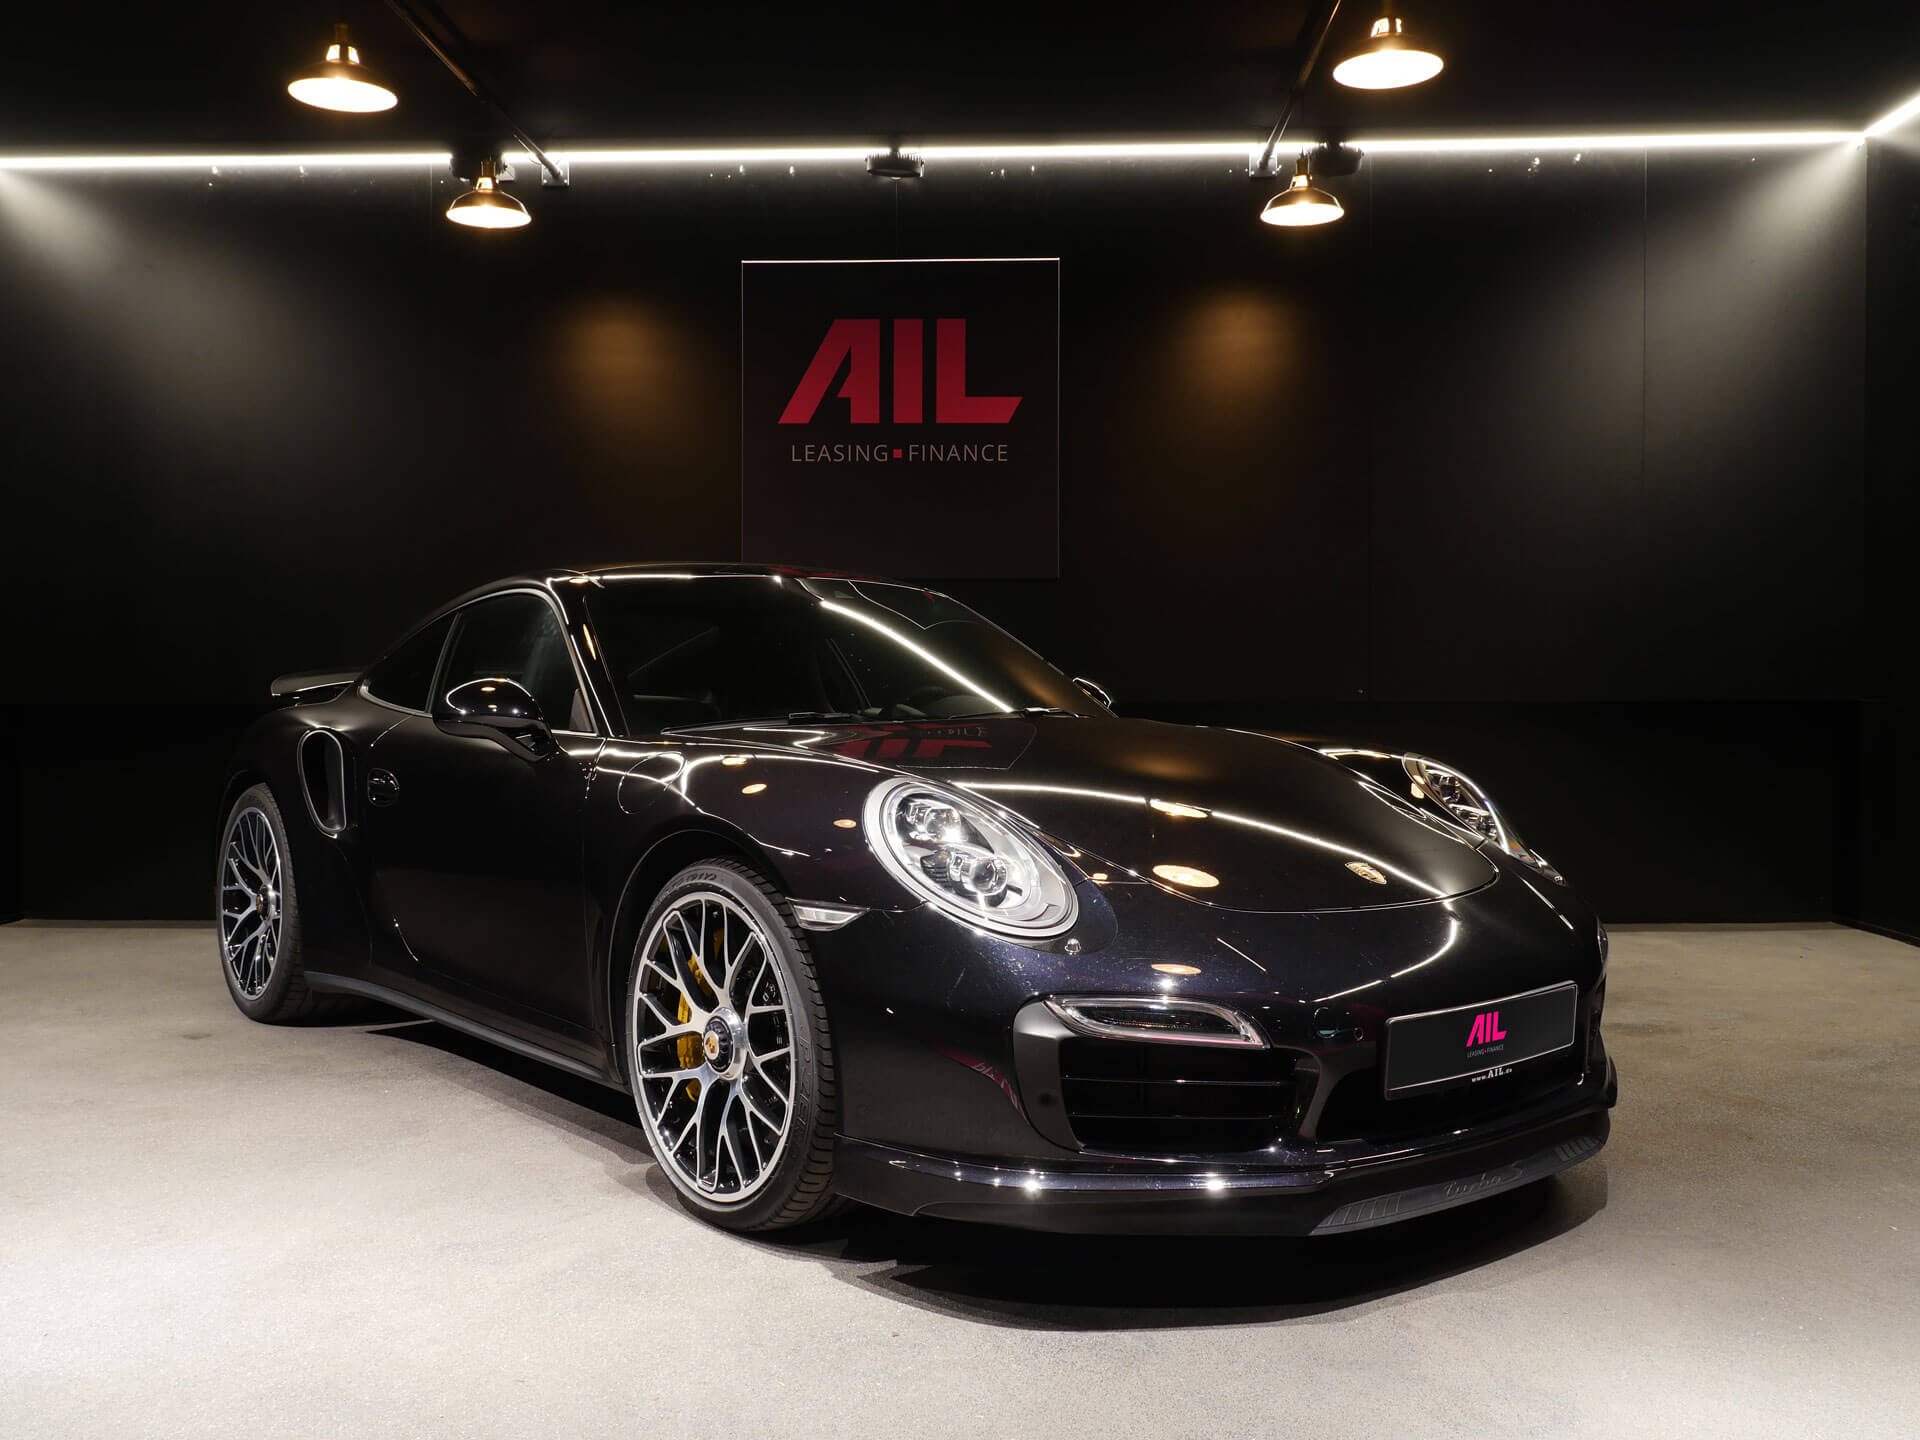 AIL Porsche 911 991 Turbo S Ceramic LED Sport Chrono Paket 6